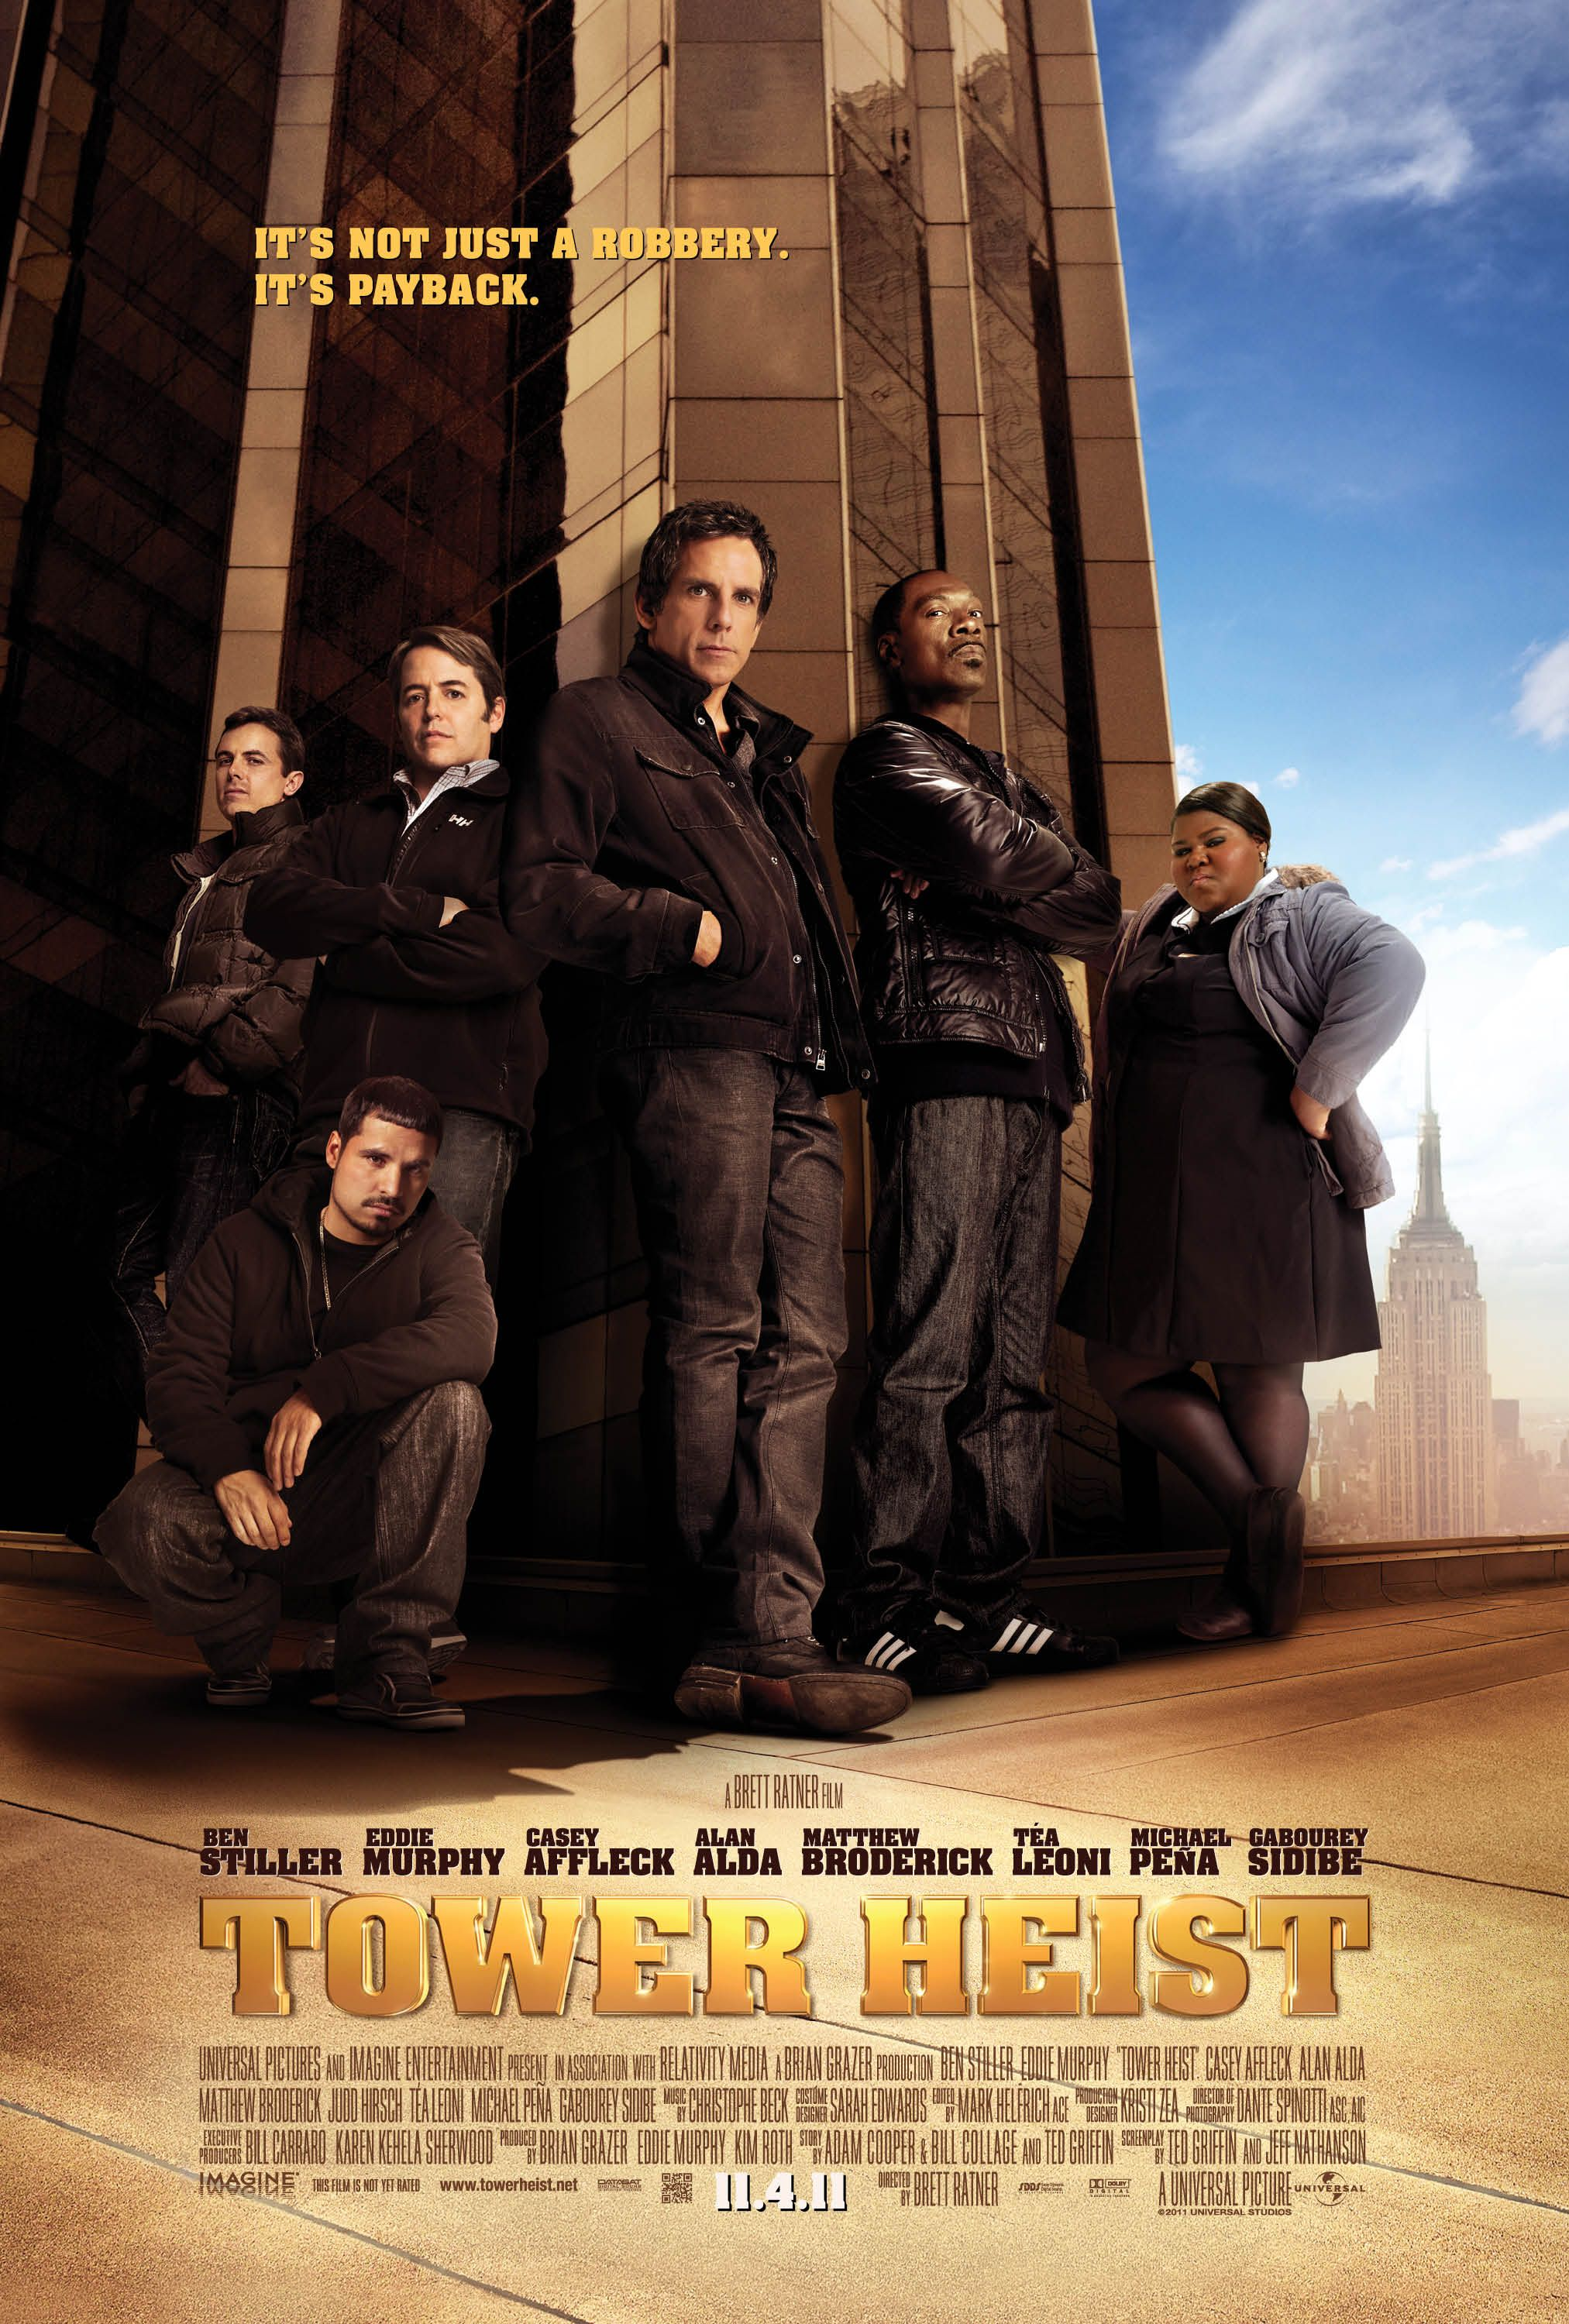 TOWER HEIST Trailer and Poster | Collider